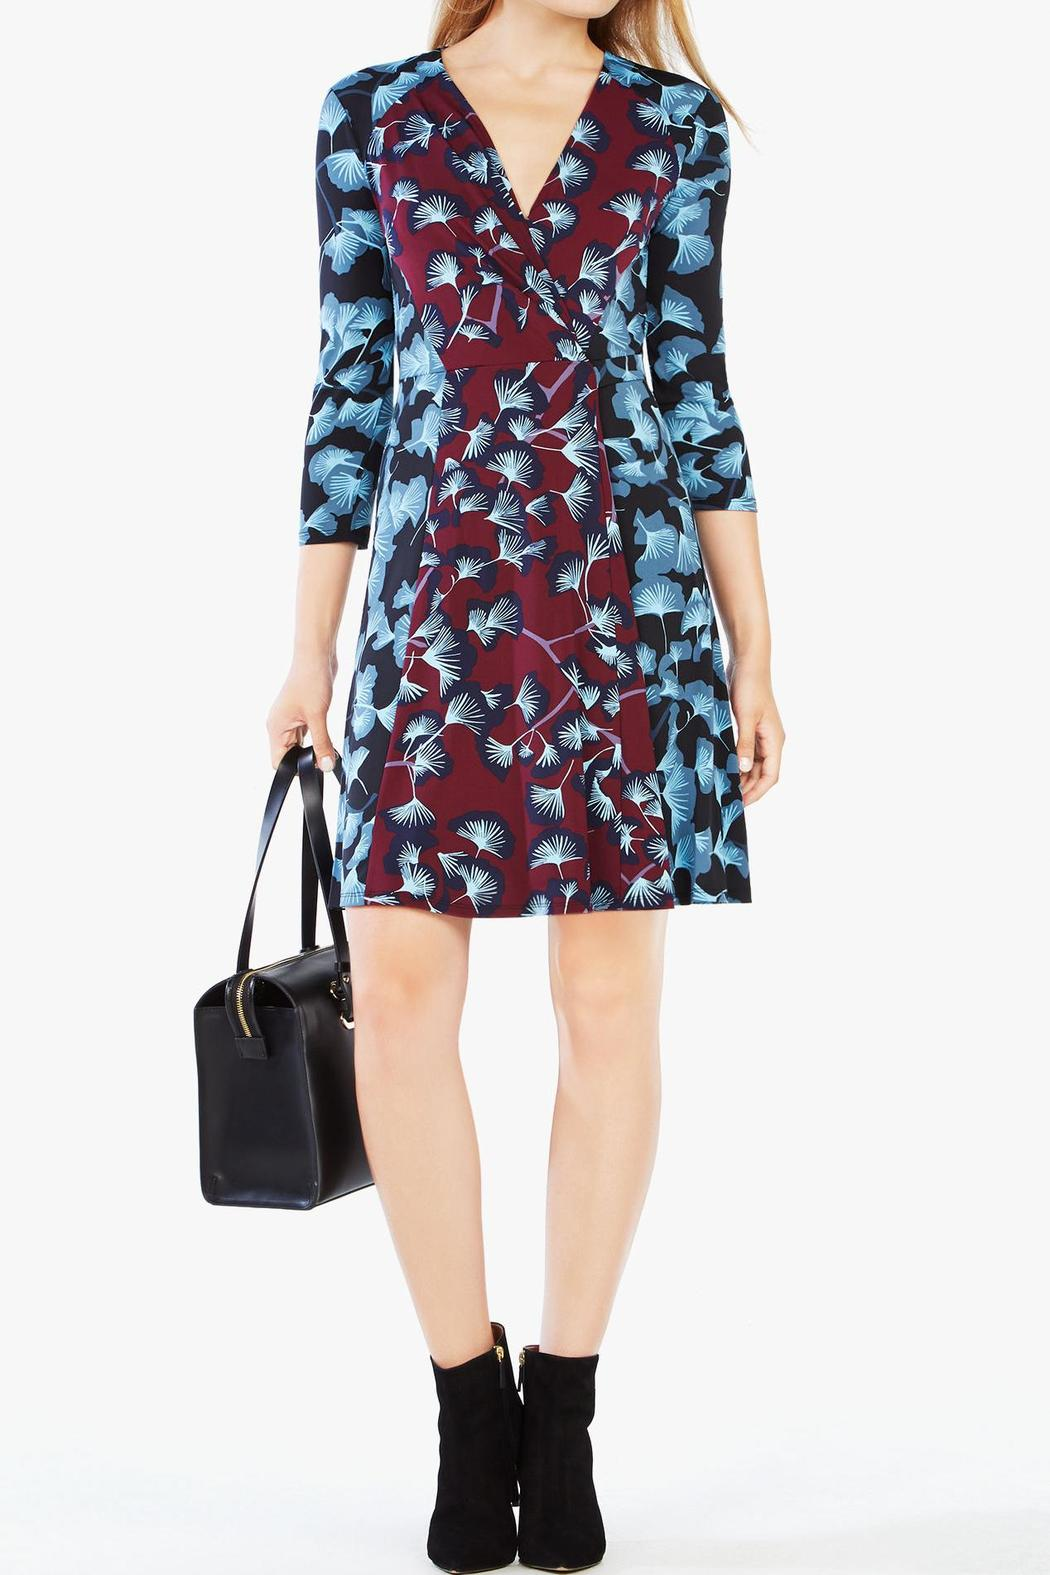 BCBG Max Azria Floral Wrap Dress - Side Cropped Image